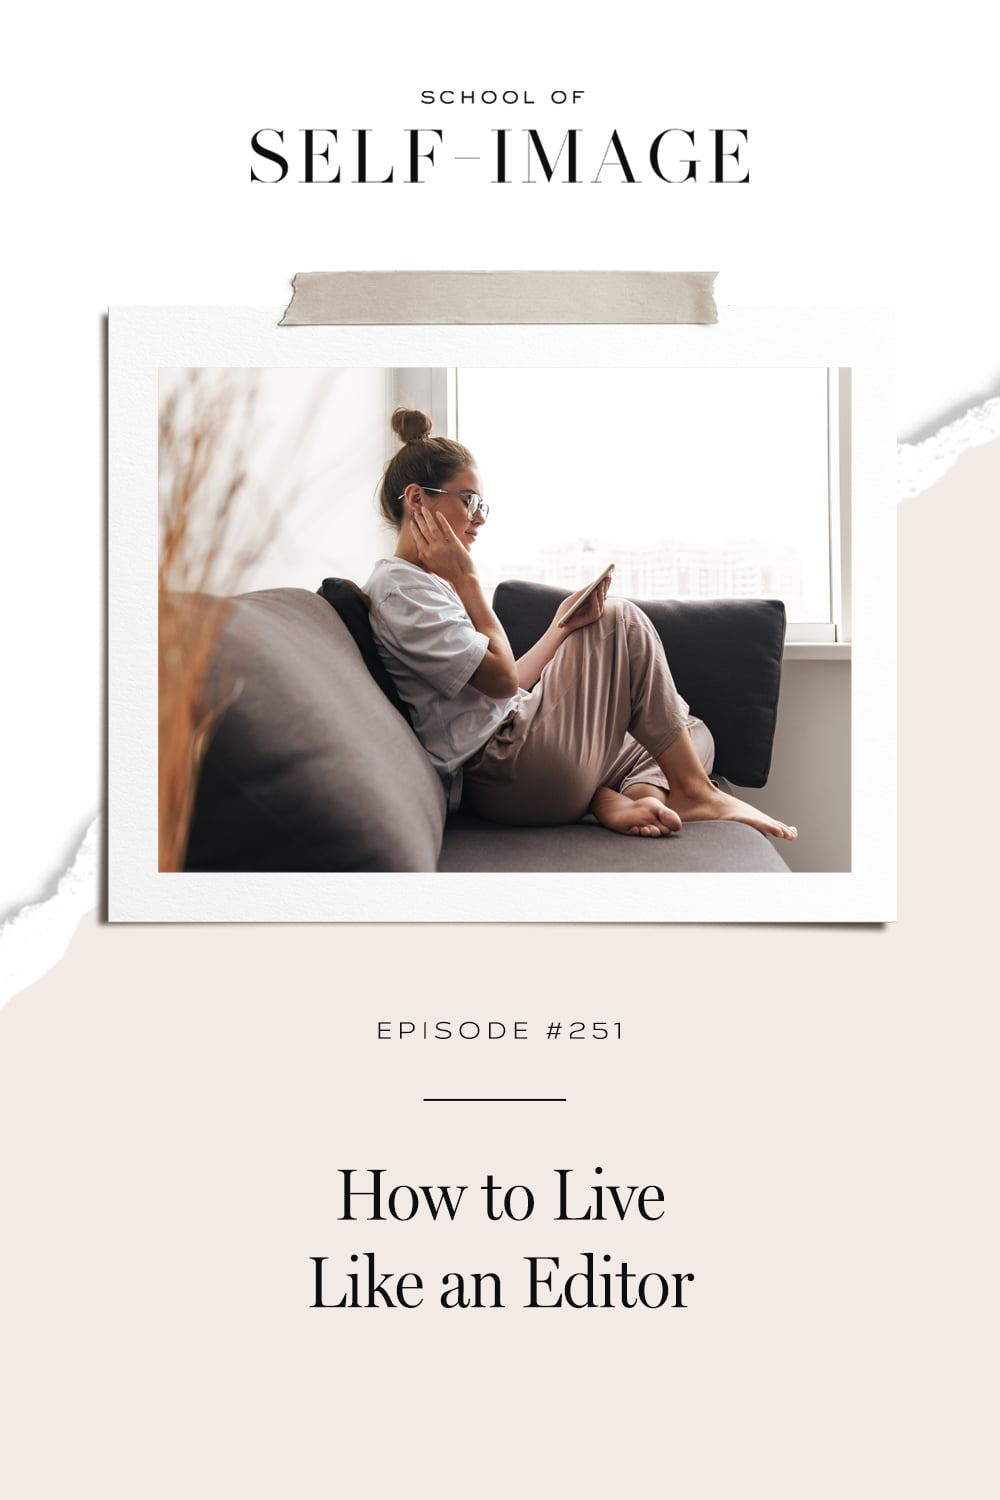 How to live your life as an artistic expression of what's possible.